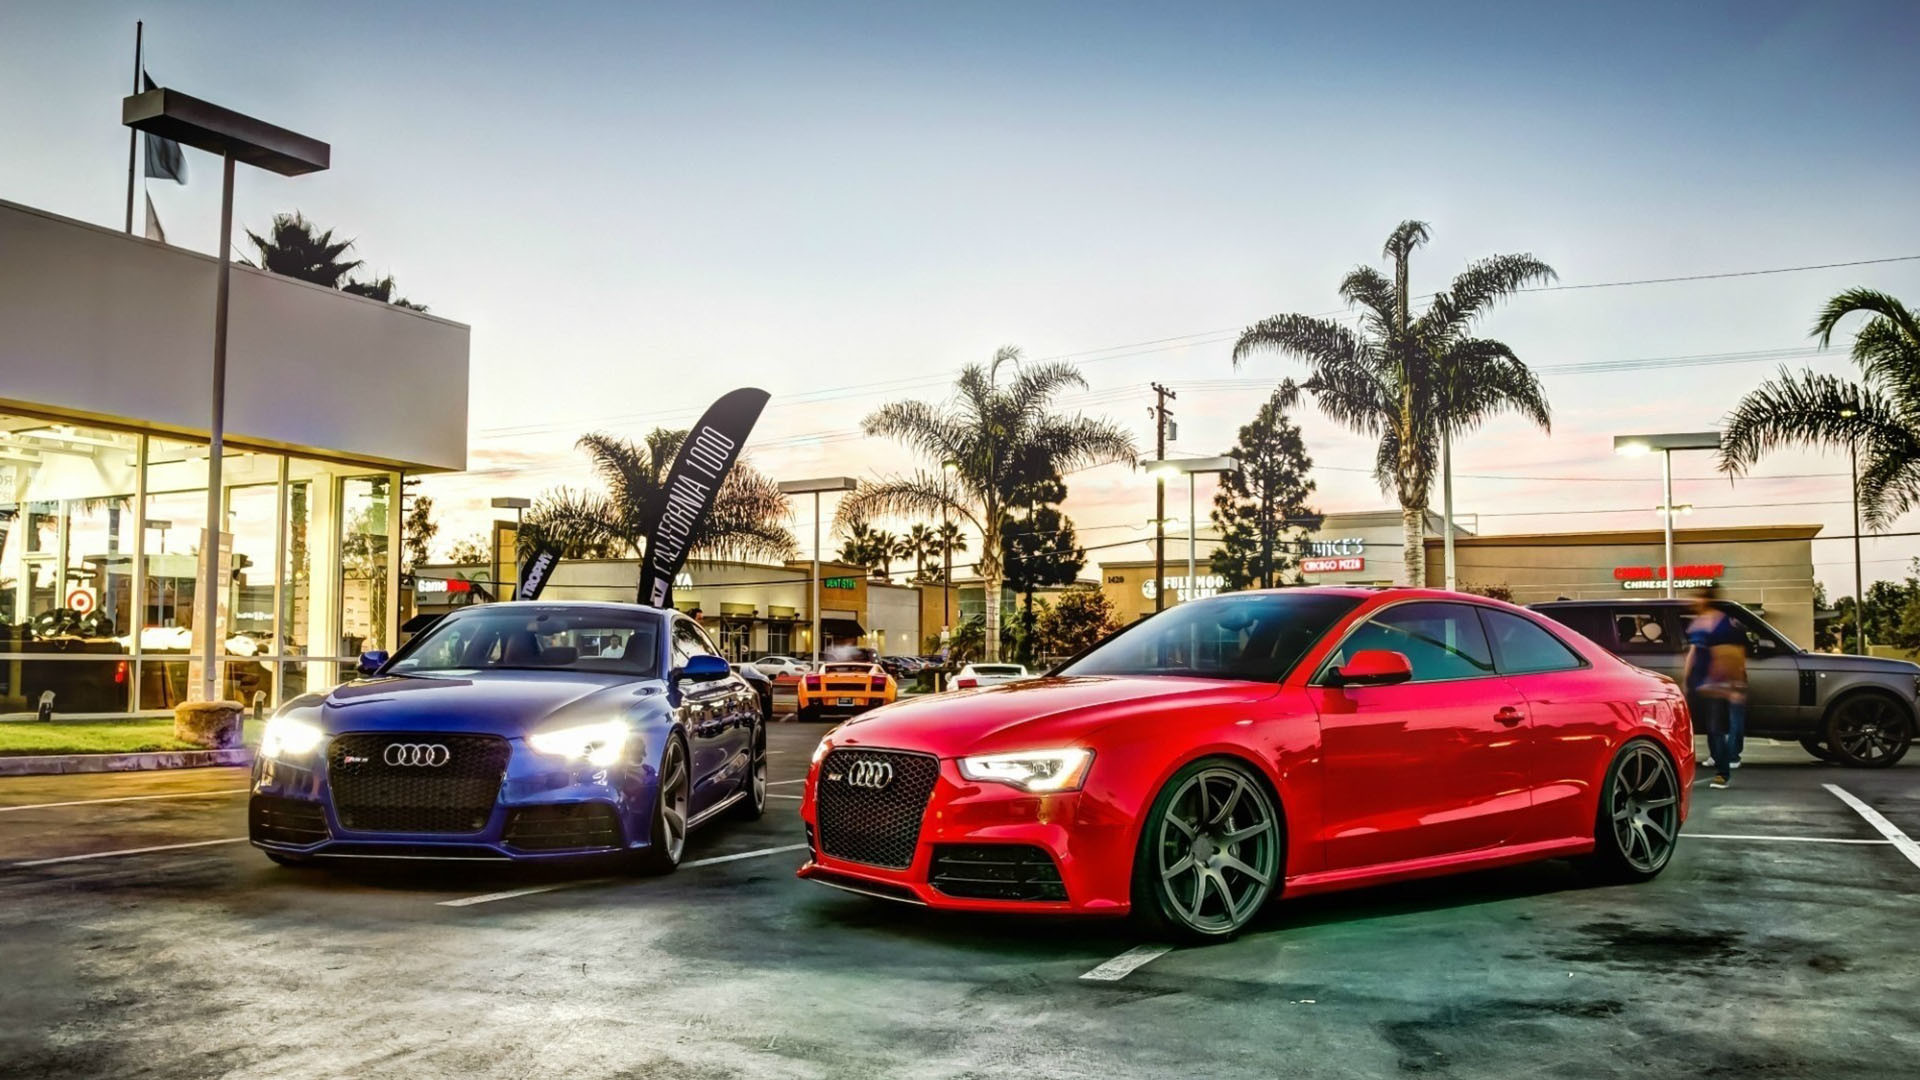 1920x1080 Audi S5 Wallpapers : Get Free top quality Audi S5 Wallpapers for your  desktop PC background